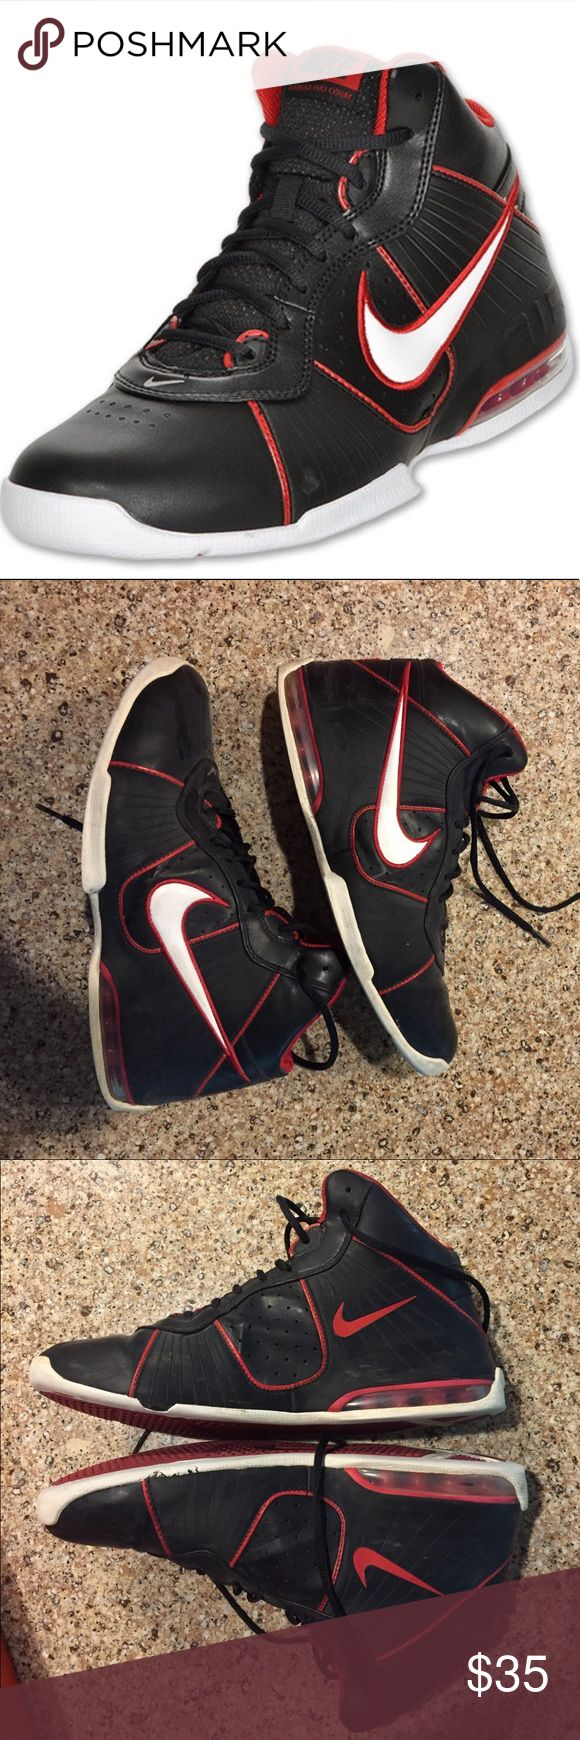 Nike Air Max Full Court Basketball Shoes Pair of Black/ White-Varsity Red Nike Air Max Full Court Basketball Shoes. SIZE 10.5. Only worn a couple times. Some slight damage on the side of the left sneaker Nike Shoes Athletic Shoes